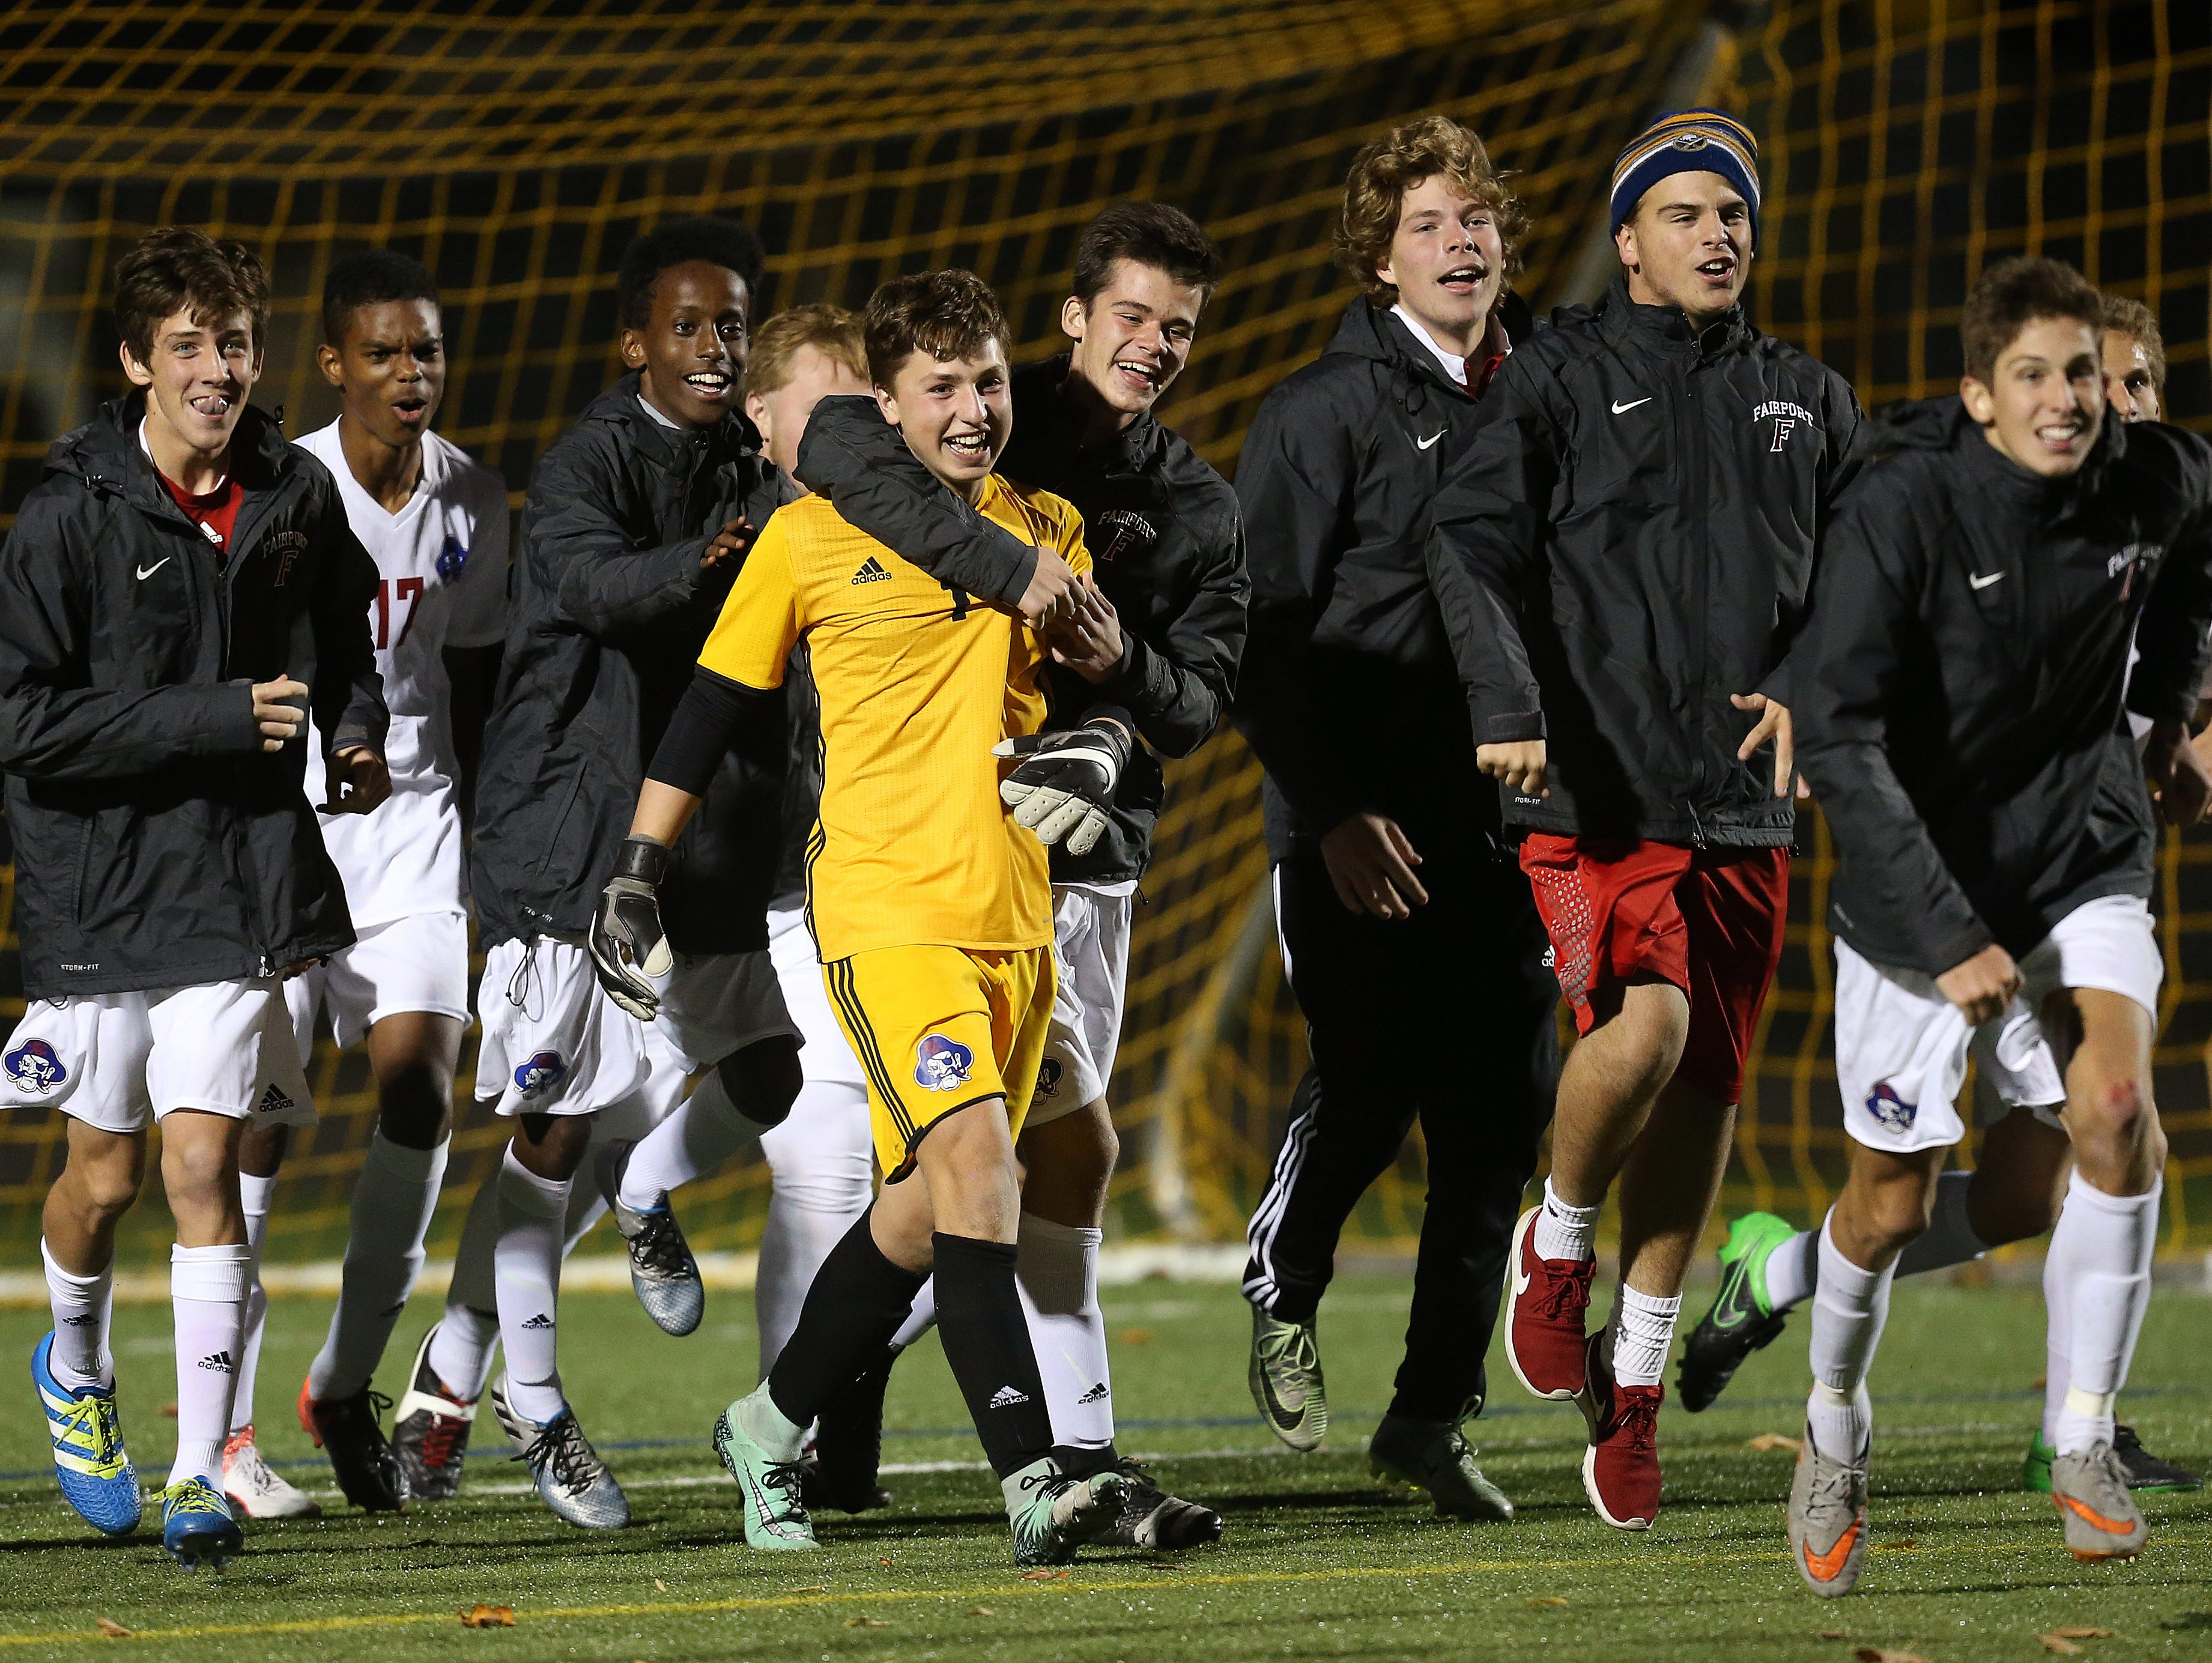 Fairport keeper Jake Horst is congratulated after the Red Raiders beat Webster Thomas 2-1 to win the Class AA title. Horst made a big save in the final seconds of the game to protect the lead.